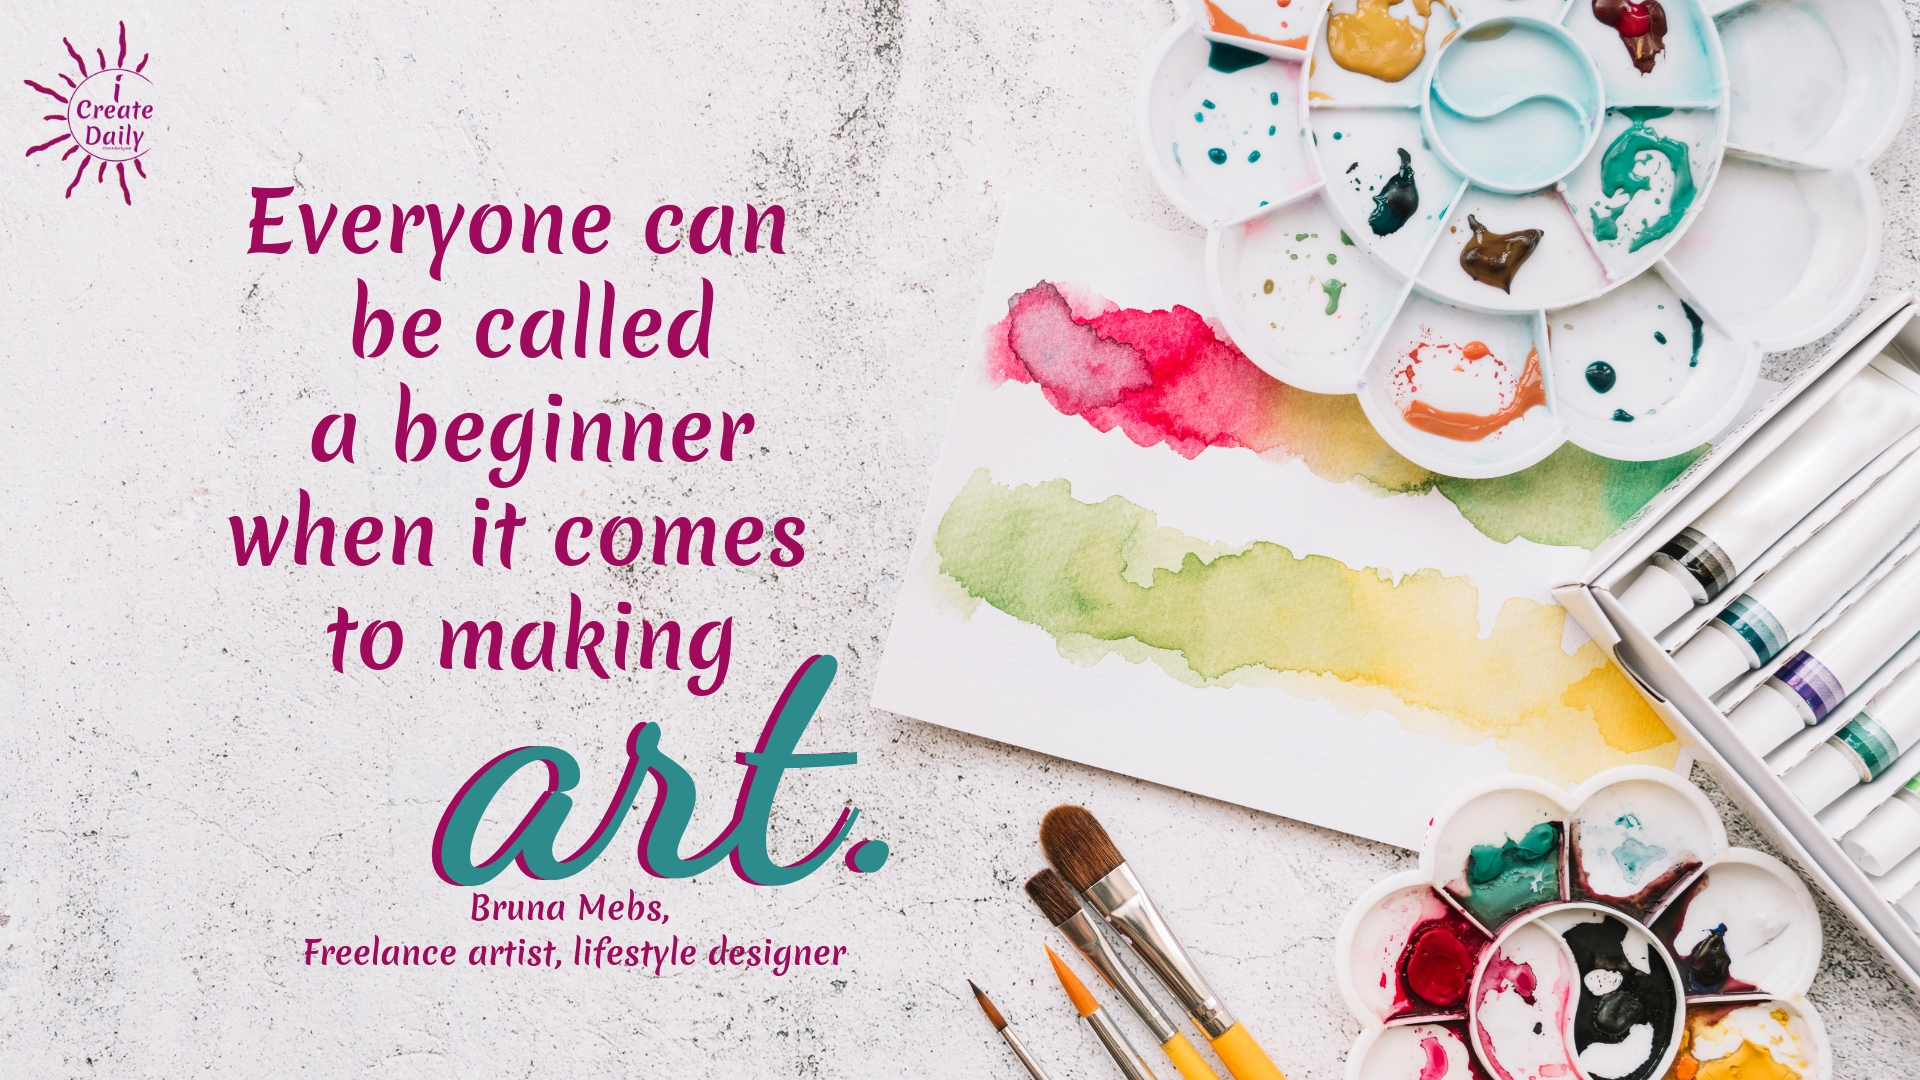 """Everyone can be called a beginner when it comes to making art."" ~Bruna Mebs, Freelance artist, lifestyle designer, artist entrepreneur #lifegoals #Dreams #Motivation #BucketLists #Ideas #Quotes #Money #IWant #Happy #ThingsToDo #Inspiration #Thoughts #Travel #Adventure #Fun #Friends #Awesome #People #Families #Heavens #RoadTrips #Wanderlust #Mottos #icreatedaily"